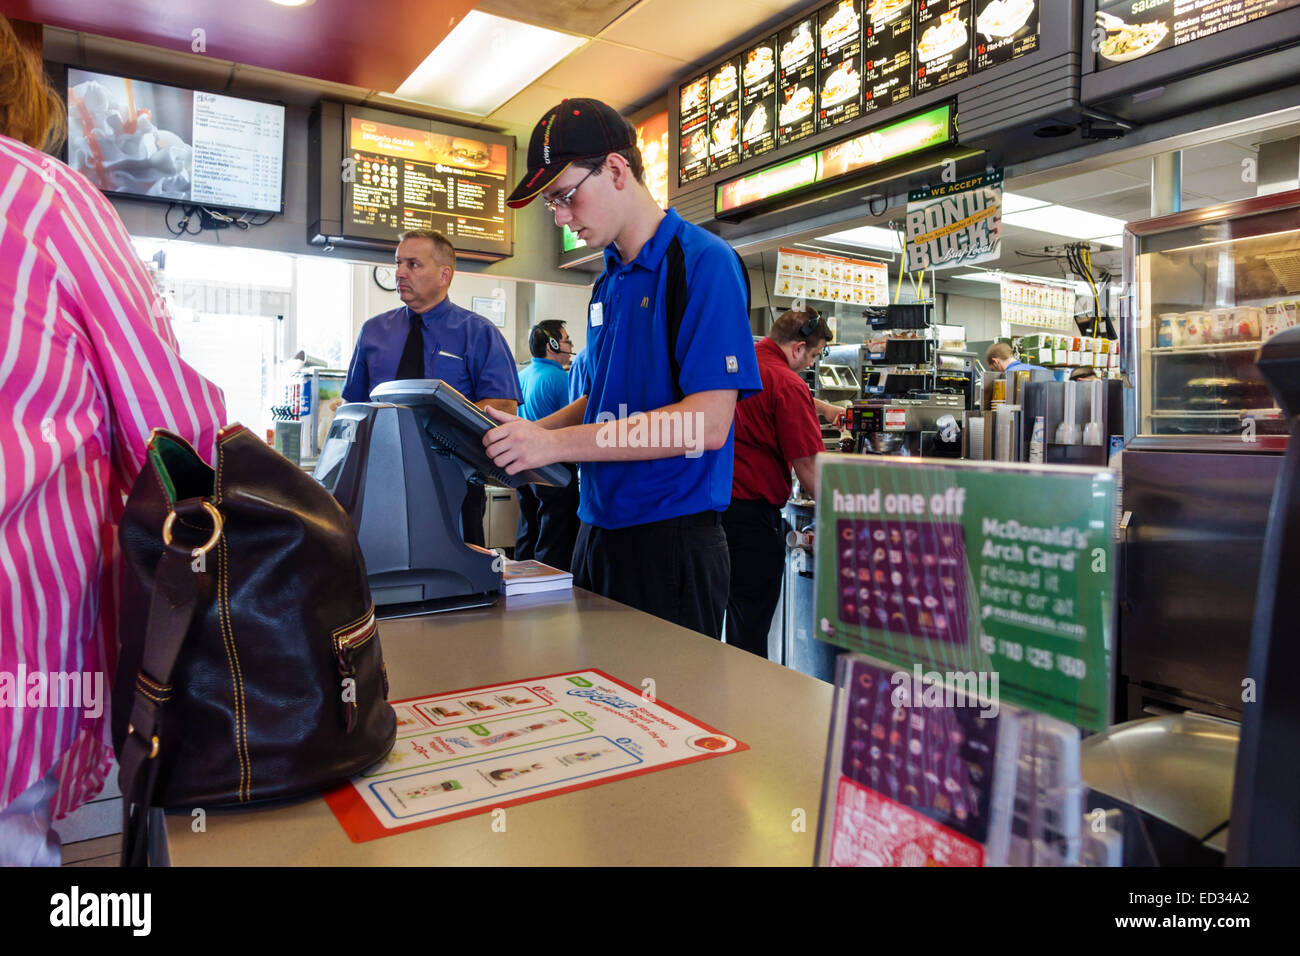 Illinois Gibson City McDonald's fast food restaurant counter man employee working job uniform order order taker - Stock Image